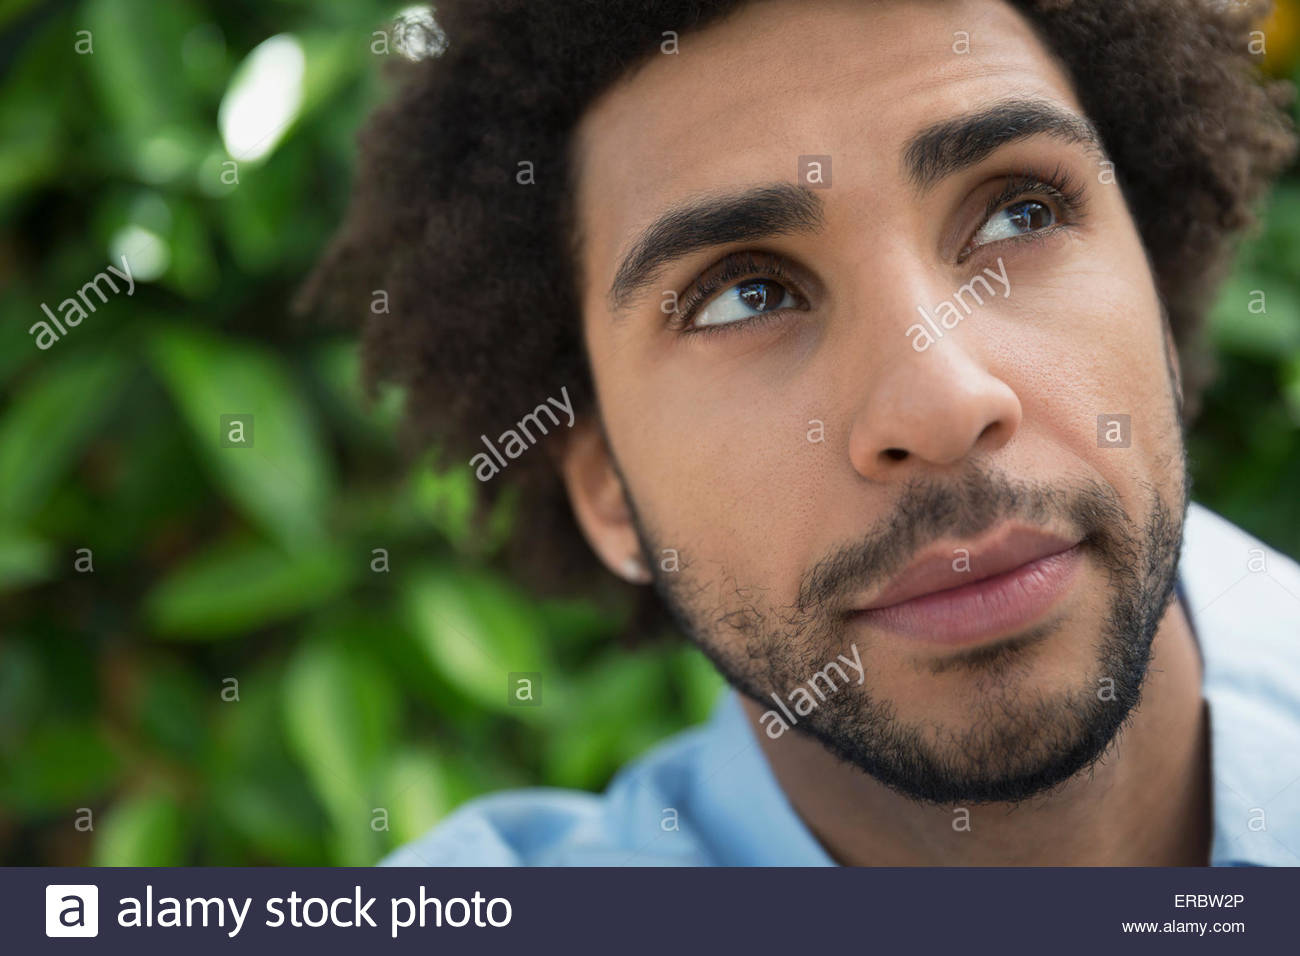 Close up portrait pensive man looking up - Stock Image